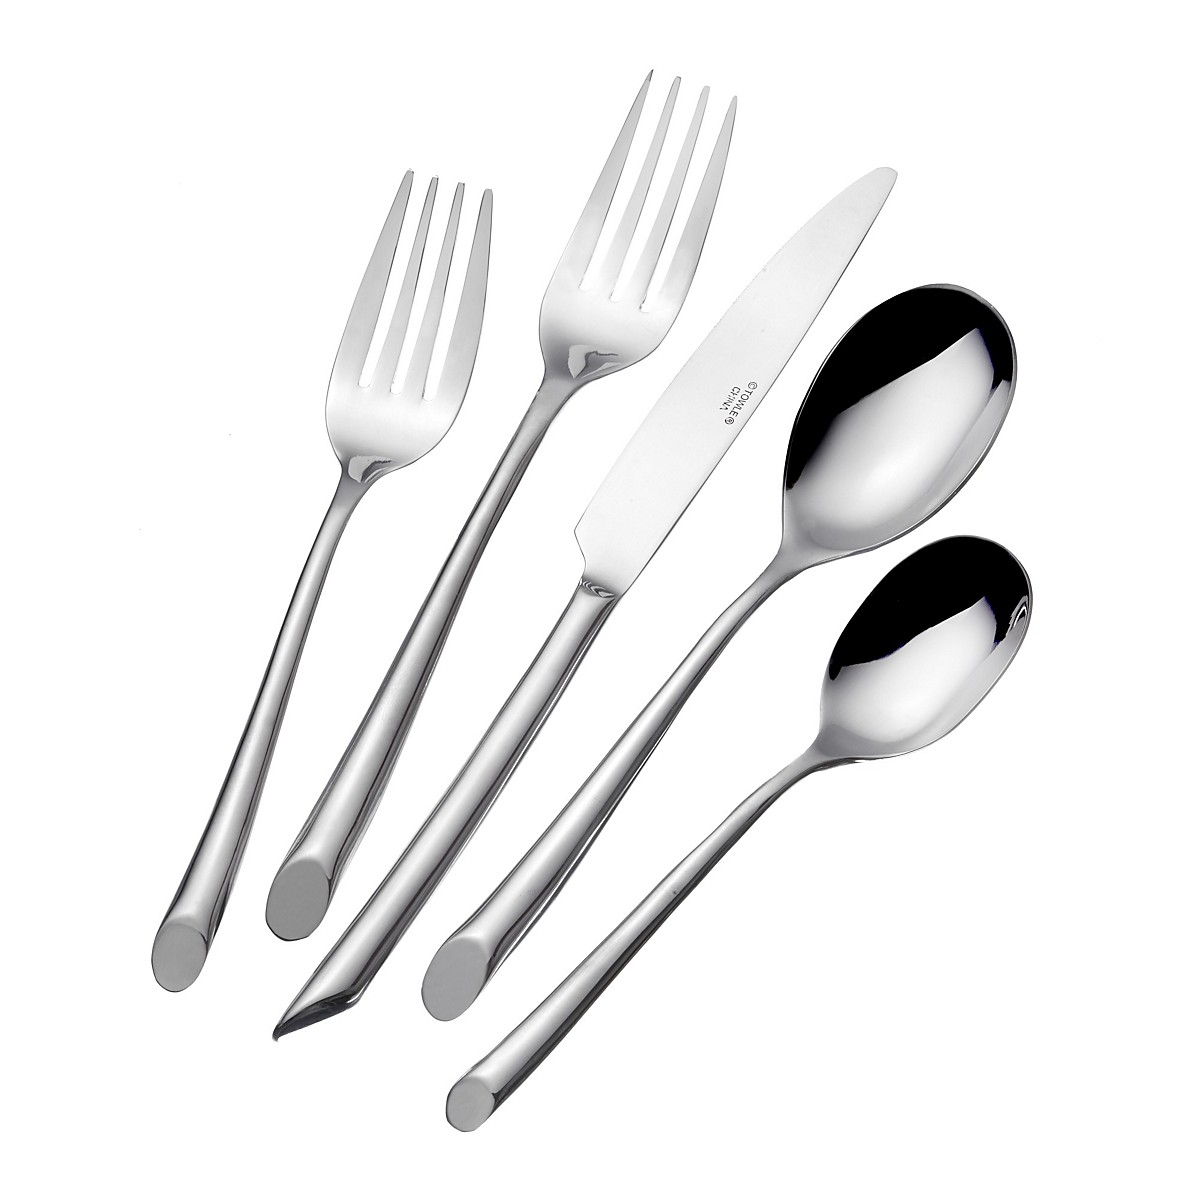 Admirable towle flatware 42 piece stainless steel flatware set for serveware ideas